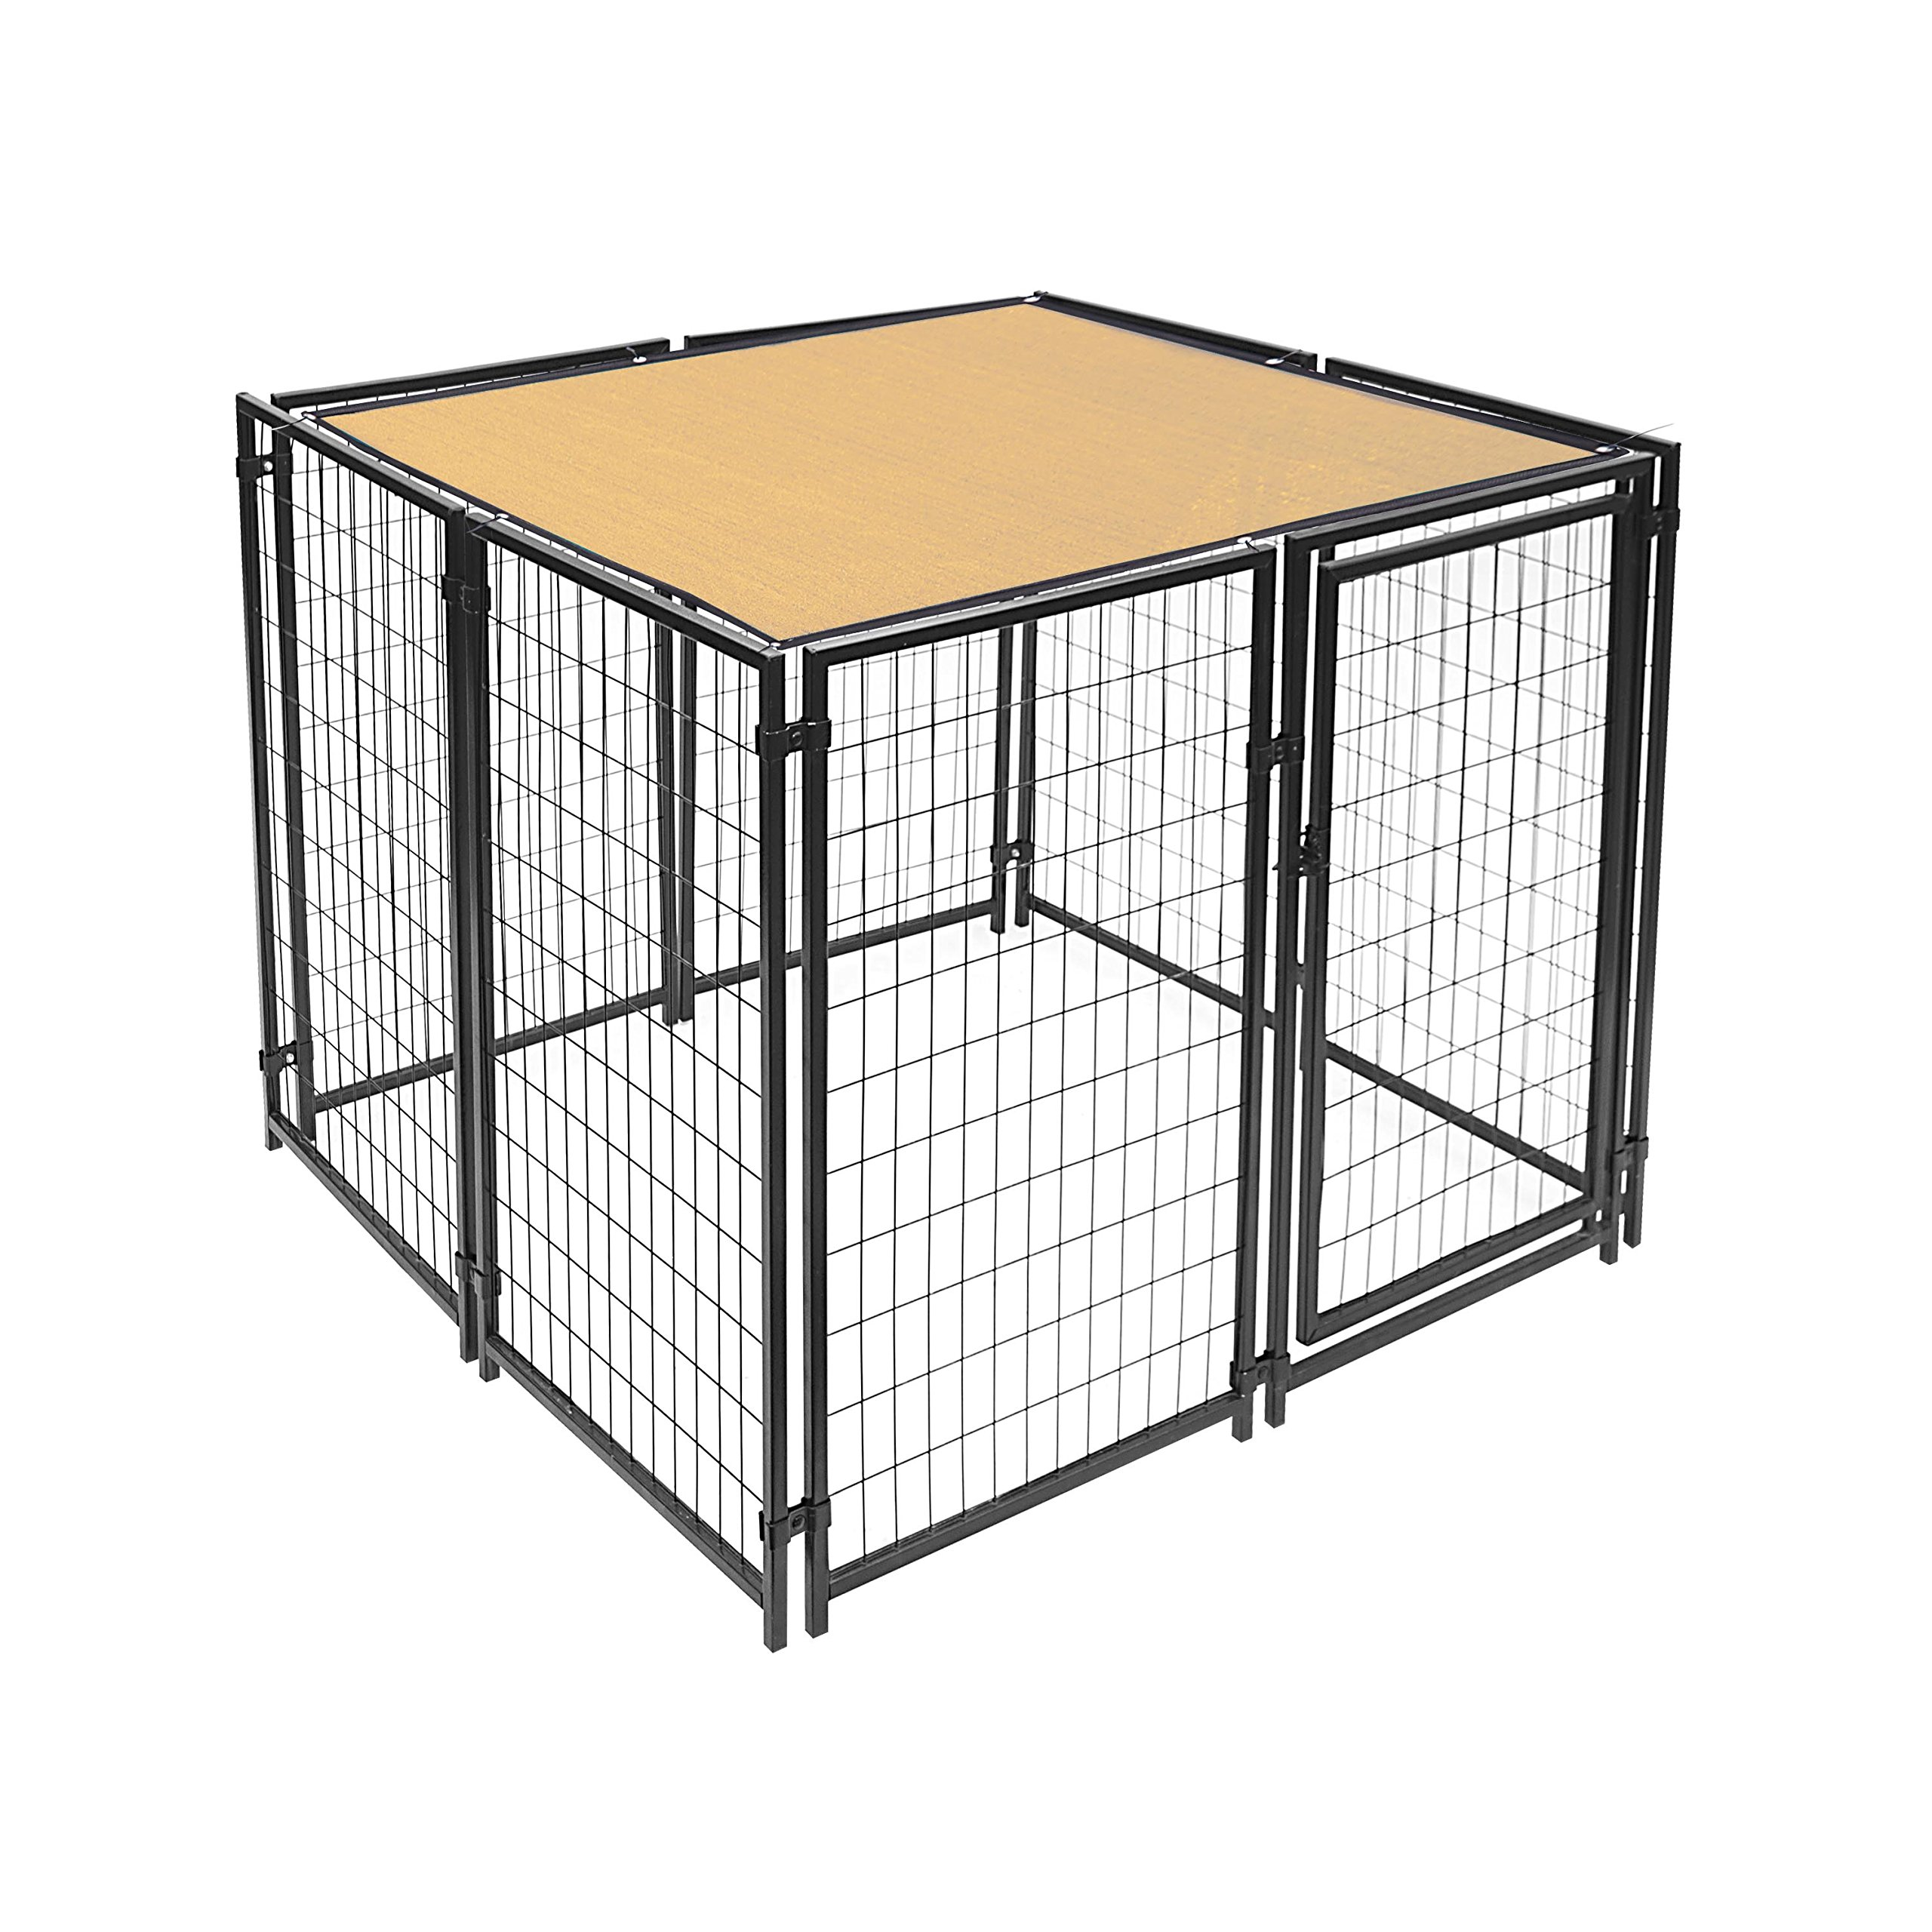 ALEKO PLK0515BE Feet Pet Dog Kennel Sun Shade Cover Weather Protection with Aluminum Grommets 5 x 15 Feet Beige